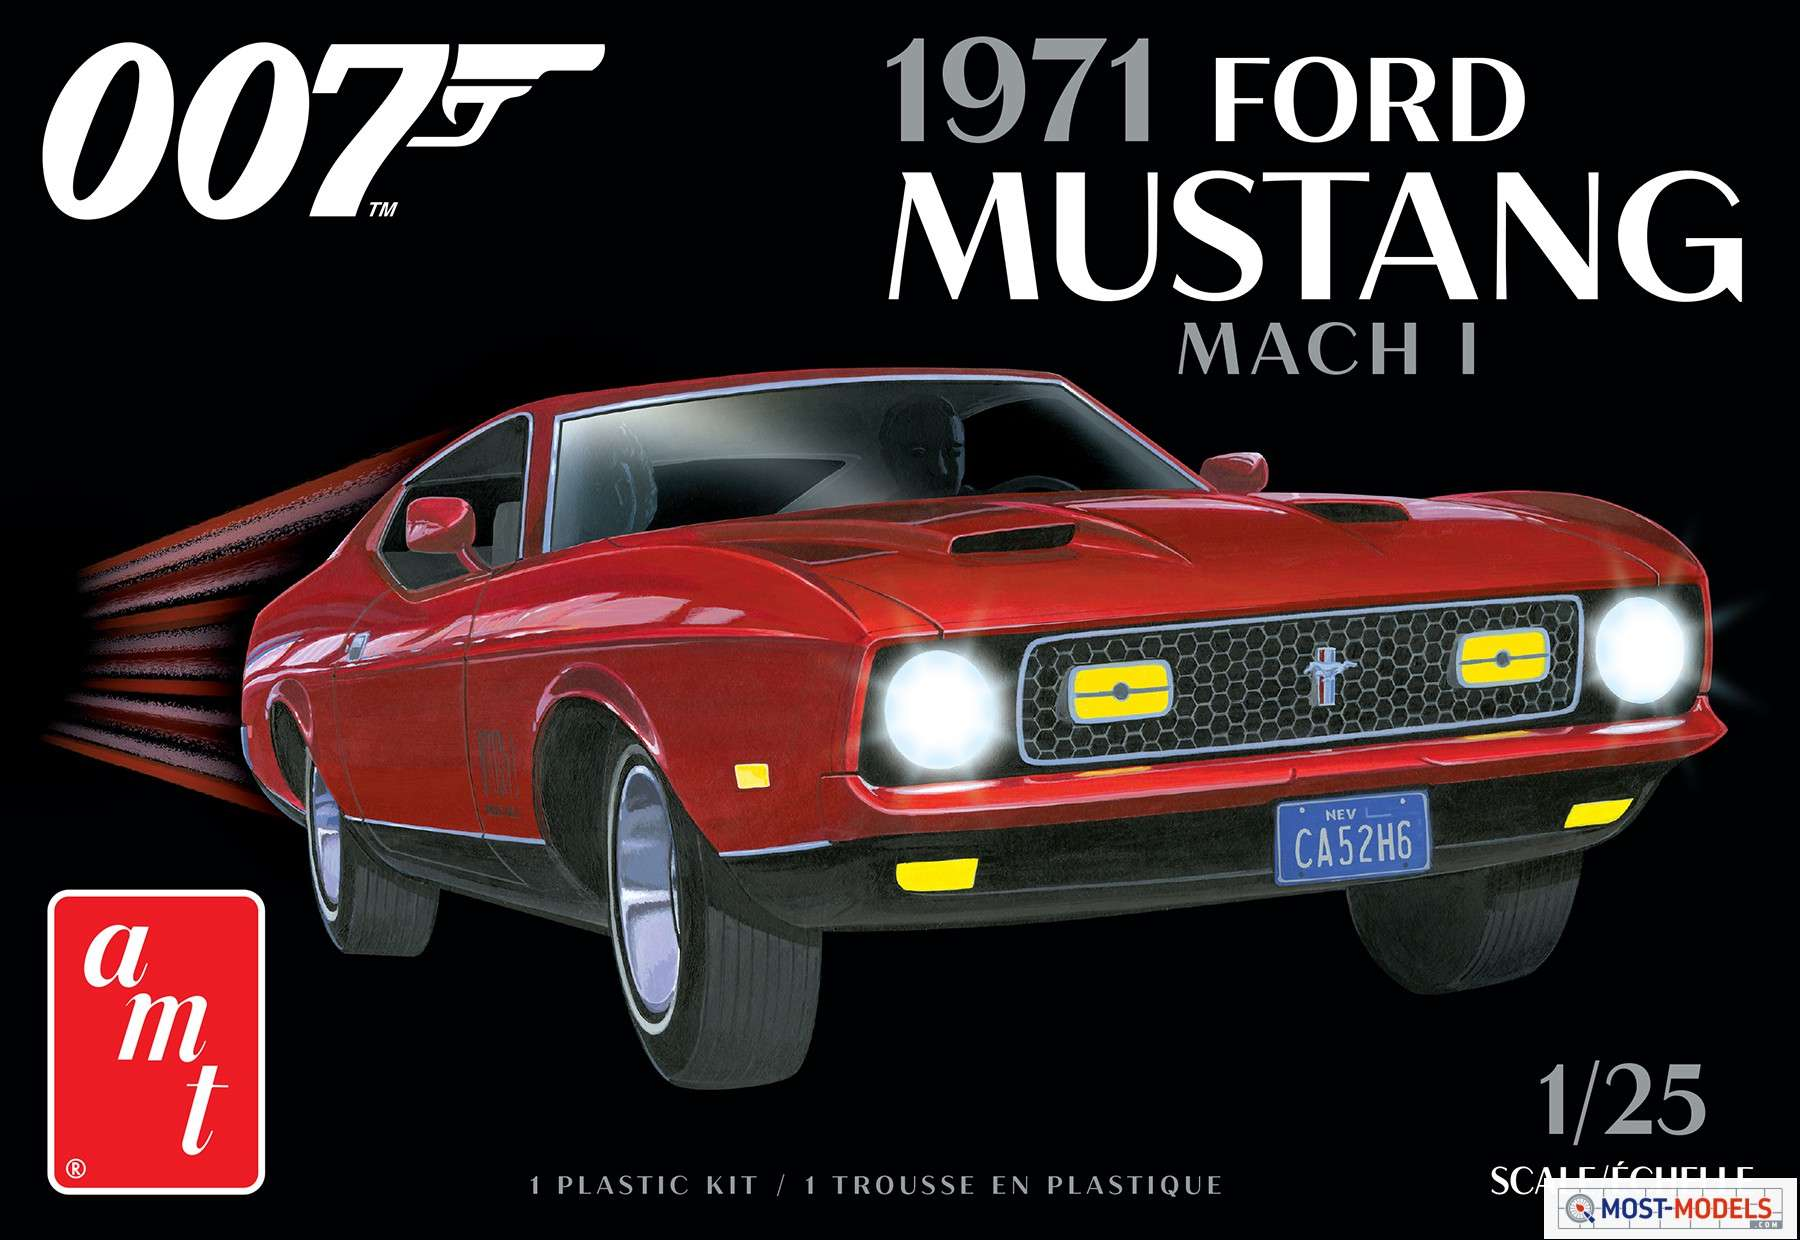 AMT1187M-007-Ford-Mustang-Mach-1-hr-final-1